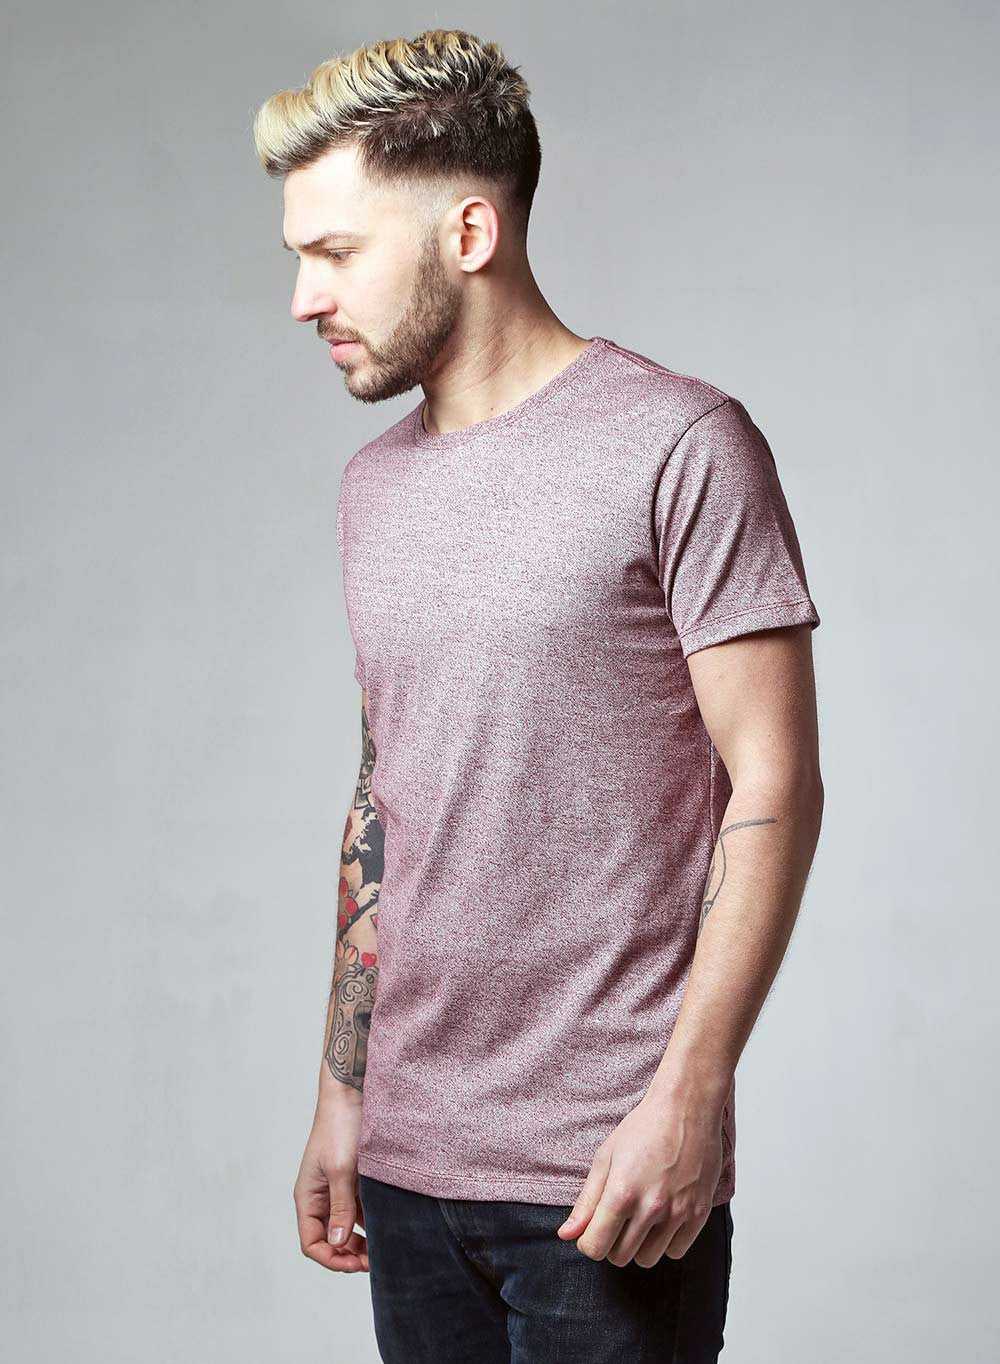 Lindbergh Slim Fit Burgundy Marl T-shirt - LoveClothing.com - 2